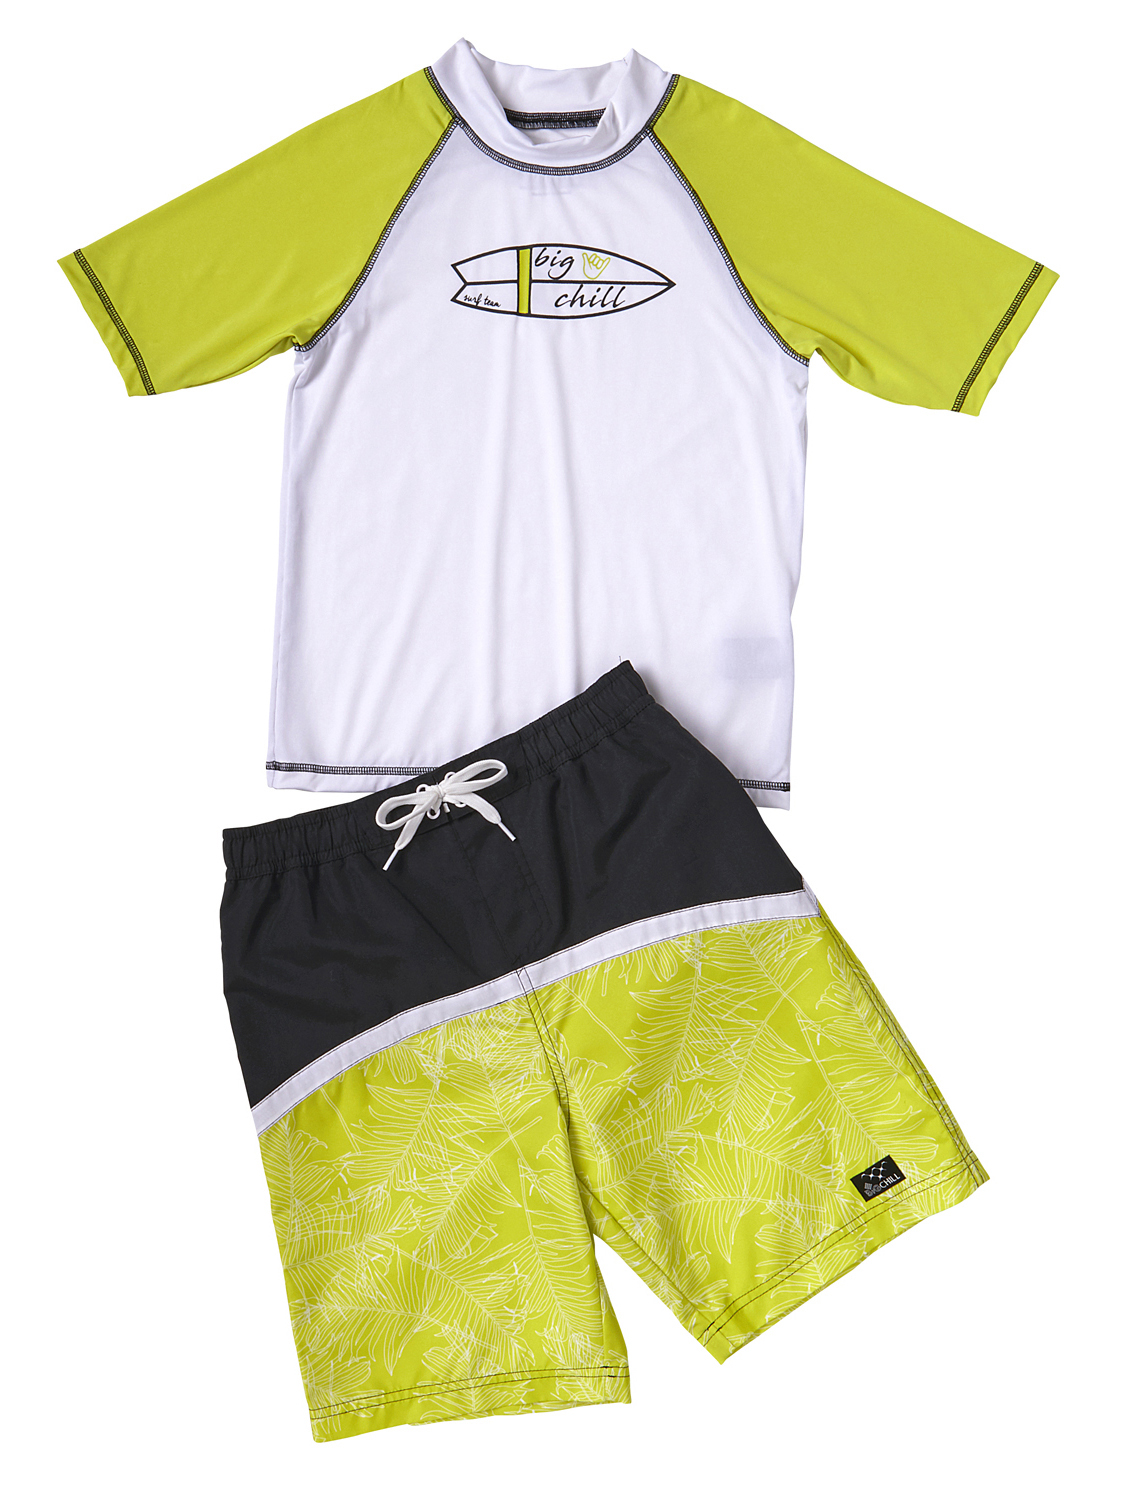 Palm Print Swim Trunk and Rash Guard, 2-Piece Outfit Set (Little Boys)